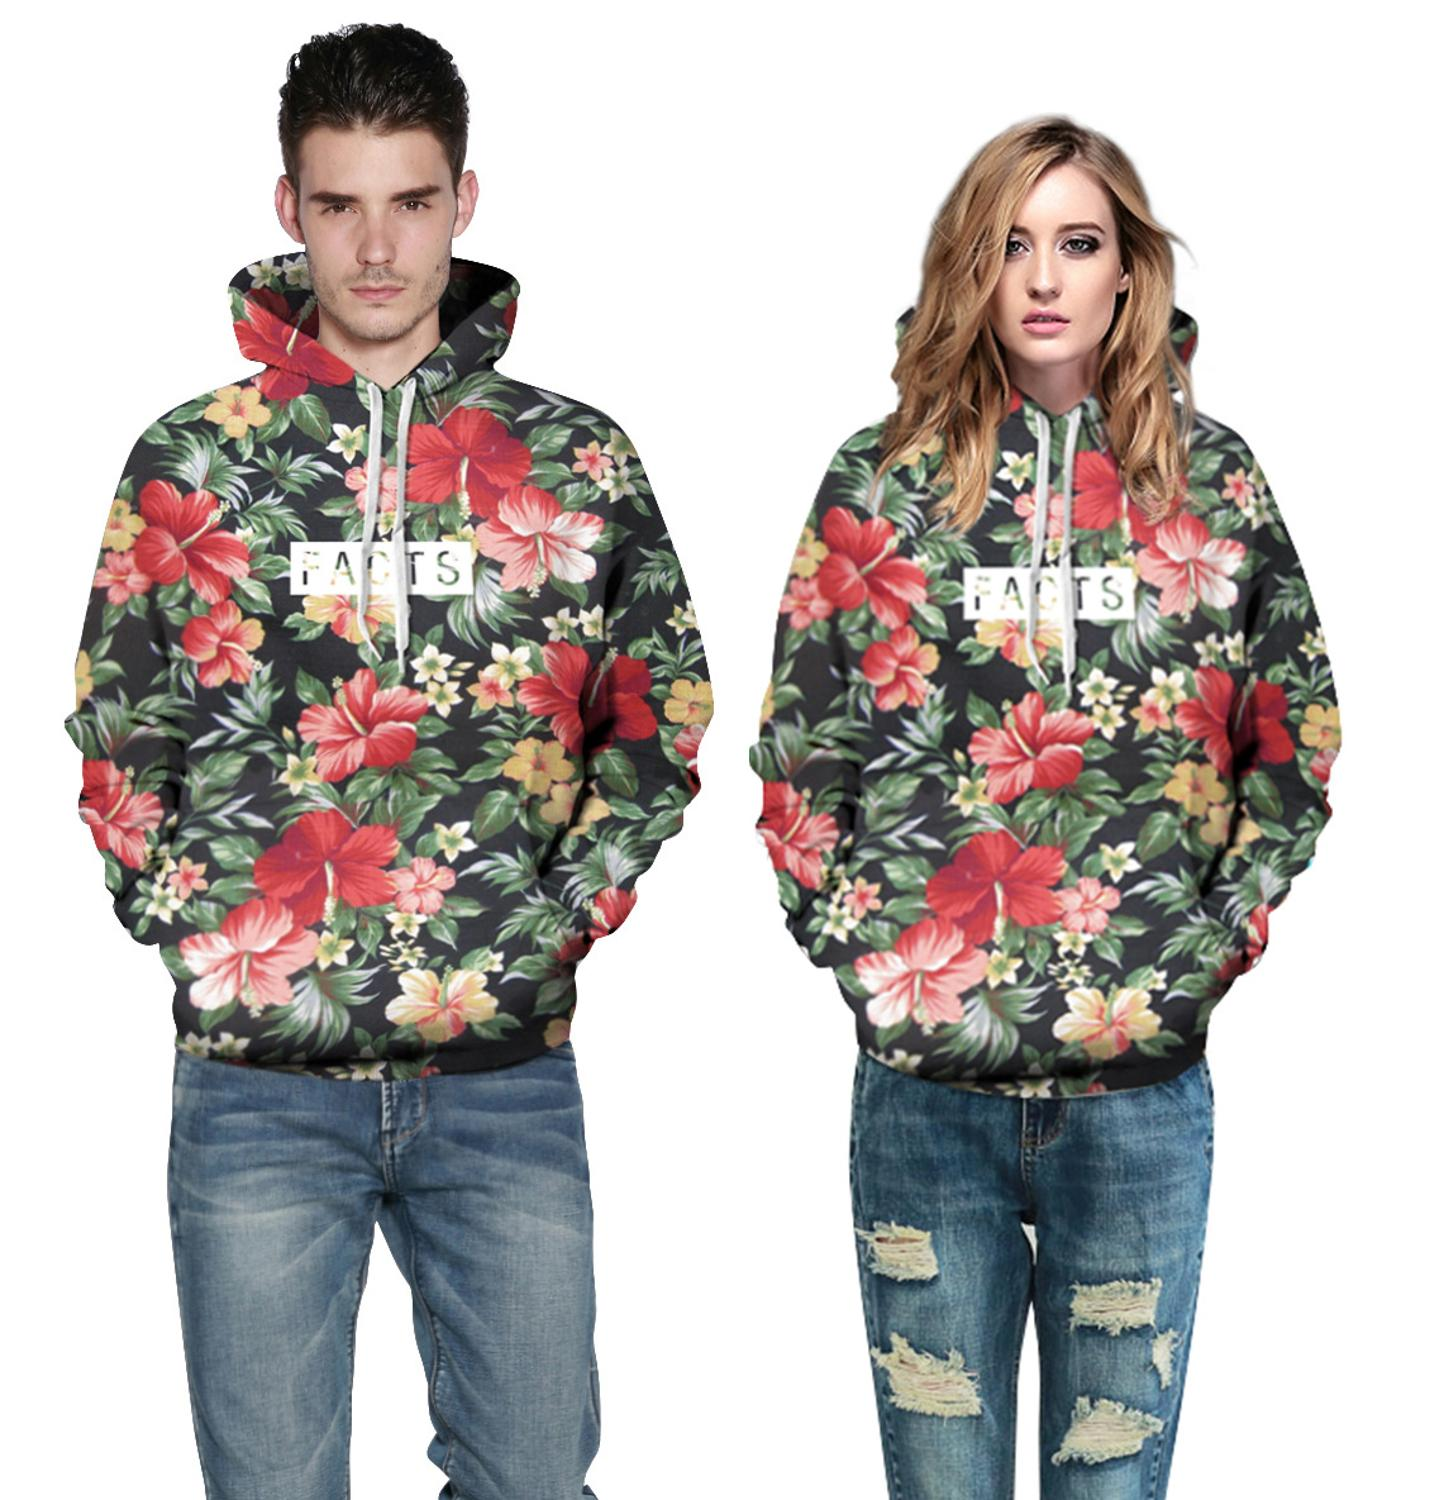 Floral Hoodies Women/Men Fashion 3D Print Hooded Sweats Tops Sweatshirt Harajuku Pullover Homme Couple Lovers Clothing